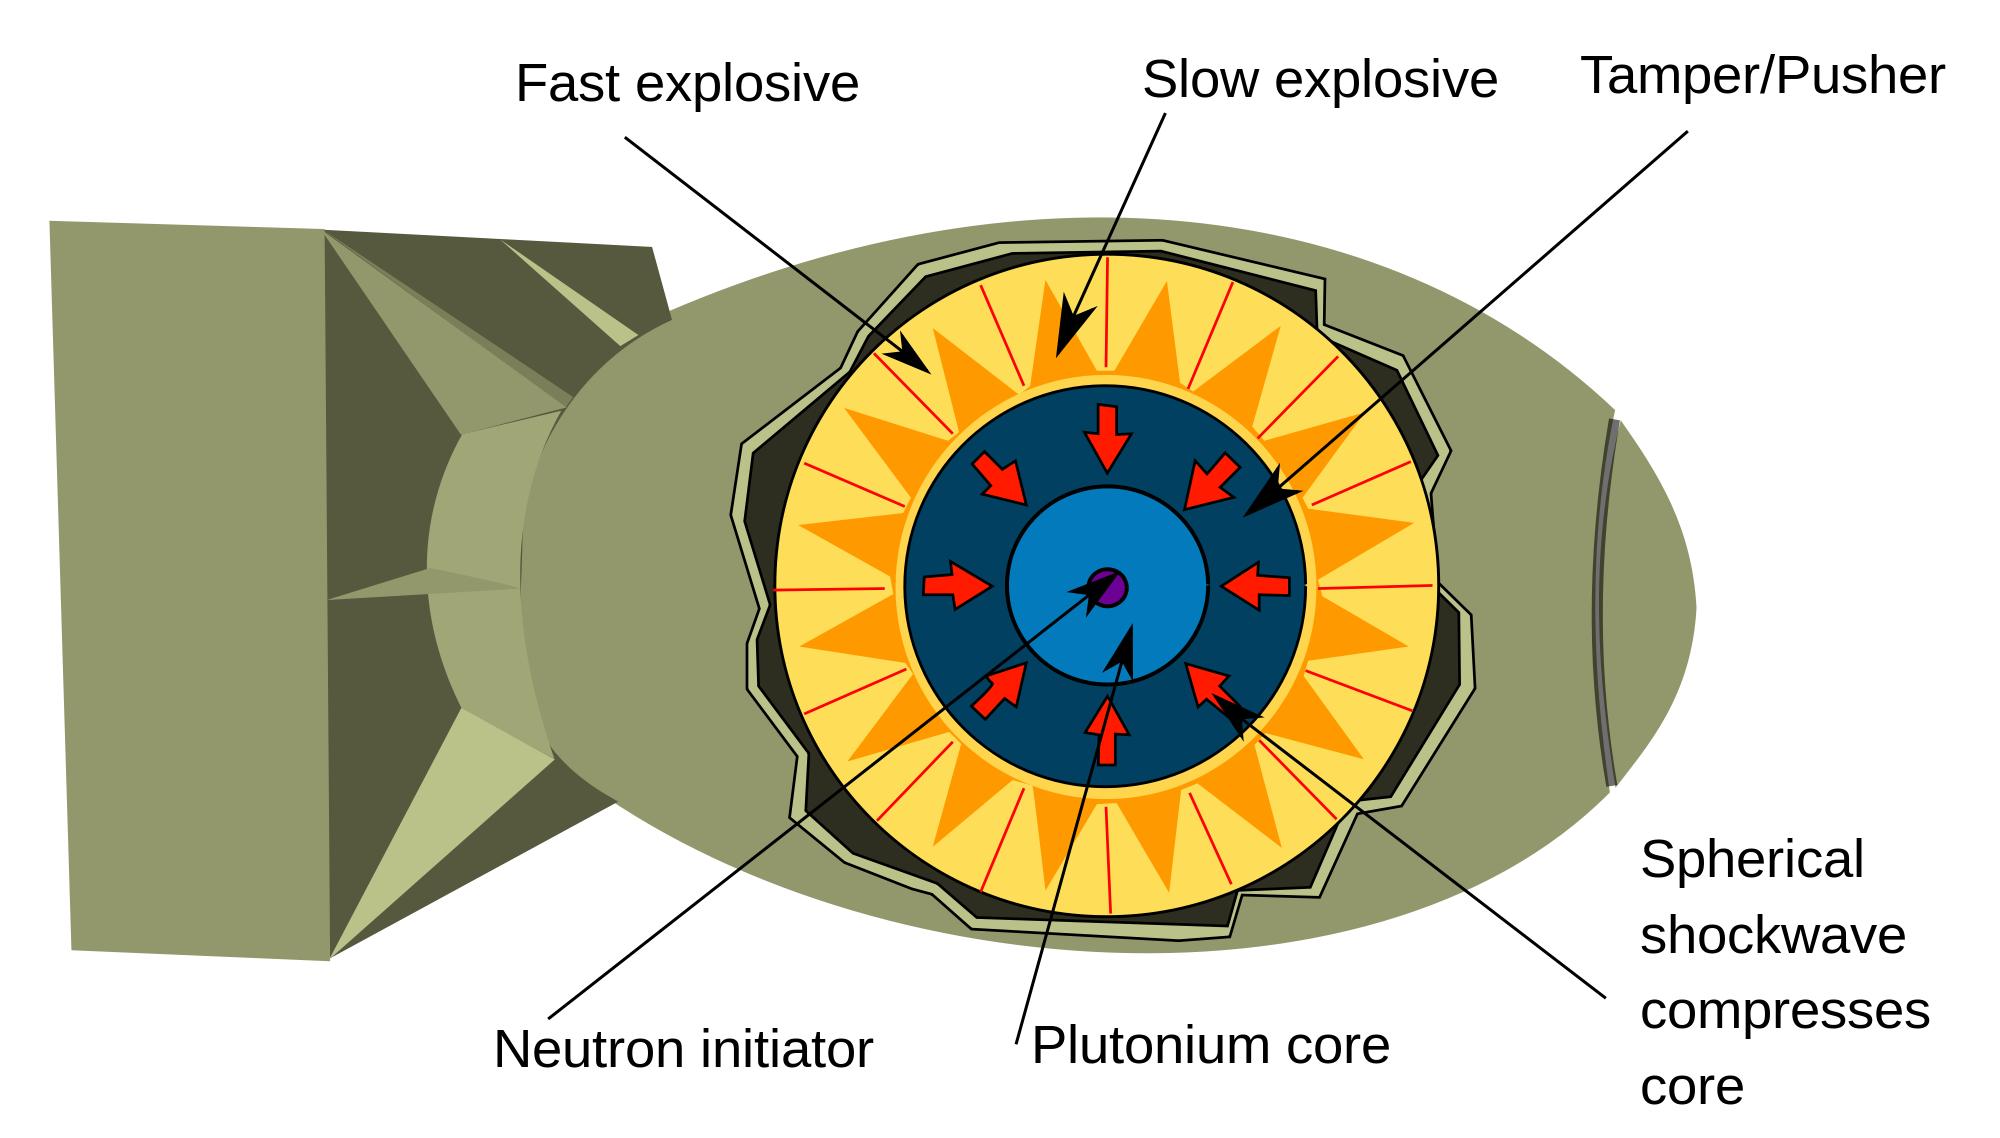 Weapon design wikipedia implosion. Explosion clipart nuclear fallout